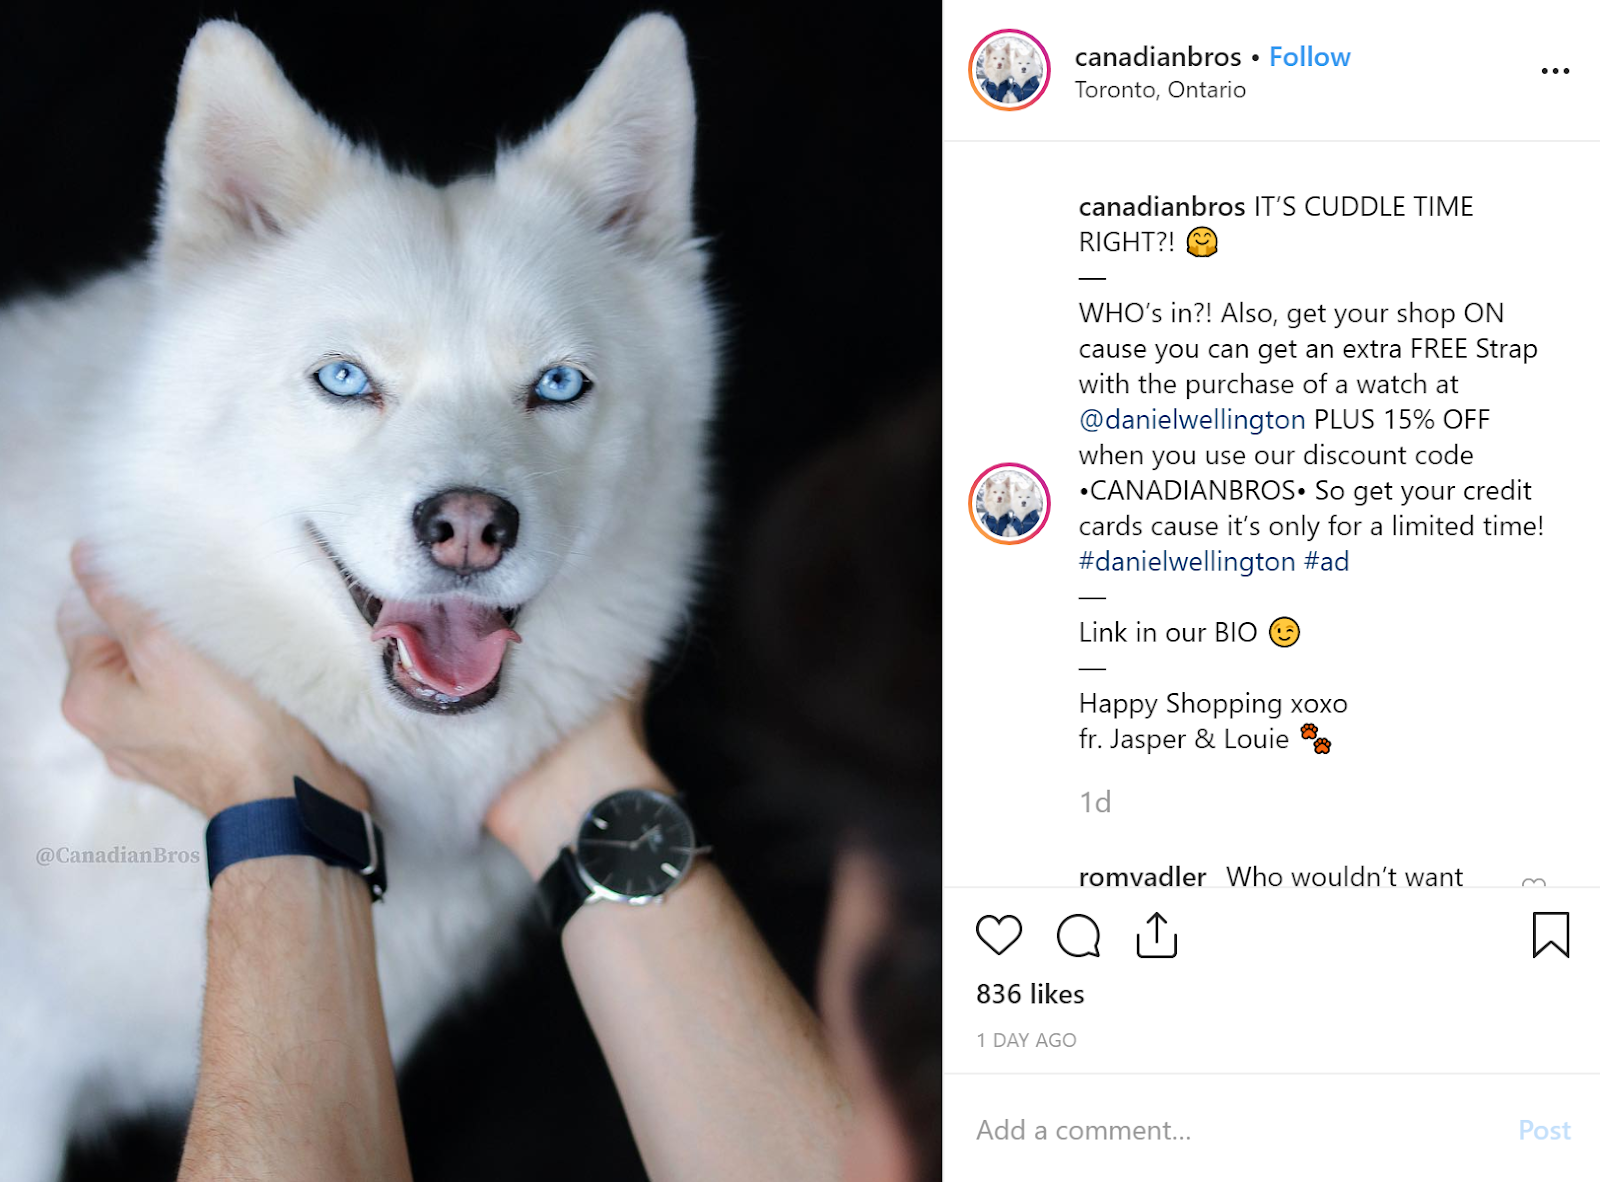 Daniel Wellington Collab with Canadianbros | Instagram Influencer Post